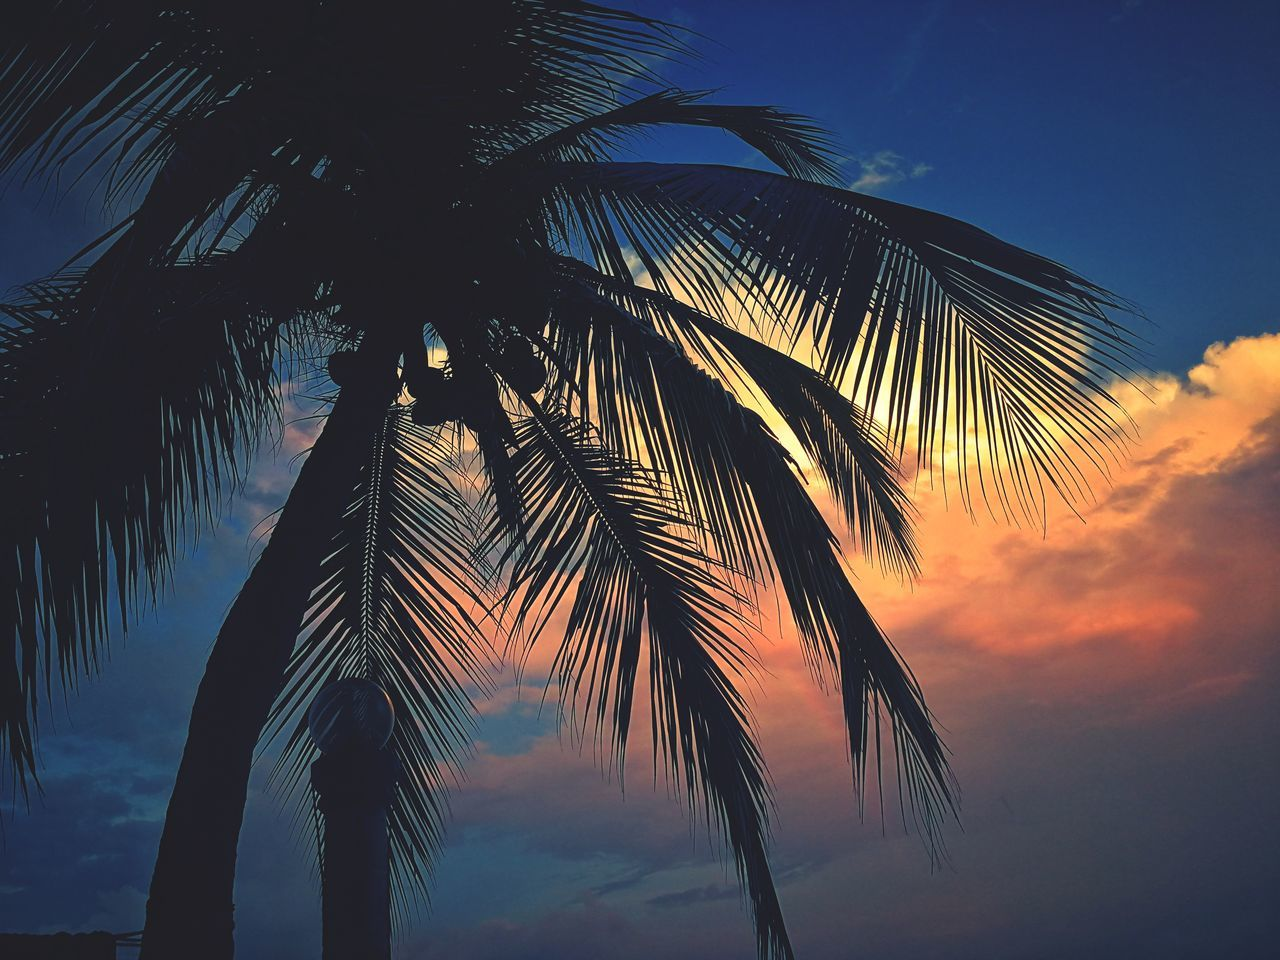 palm tree, tree, nature, sky, low angle view, beauty in nature, palm frond, scenics, tranquility, growth, blue, palm leaf, tree trunk, outdoors, no people, idyllic, tranquil scene, sea, sunset, day